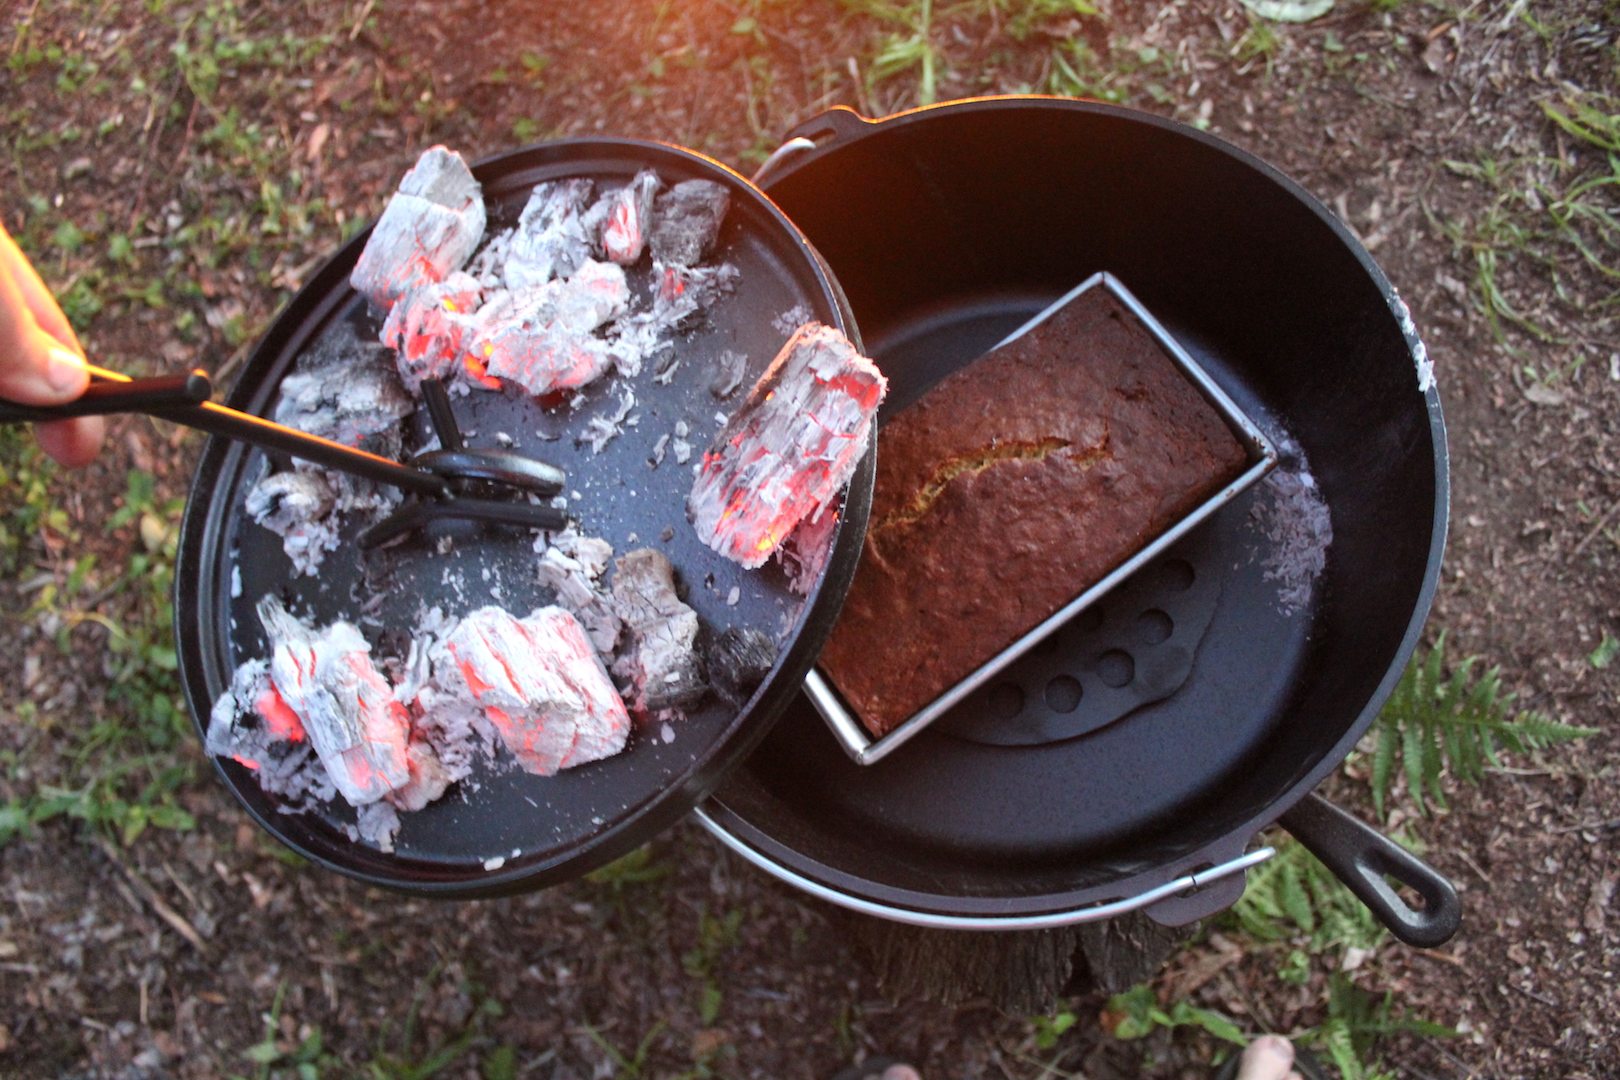 Campfire Baking in a Dutch Oven